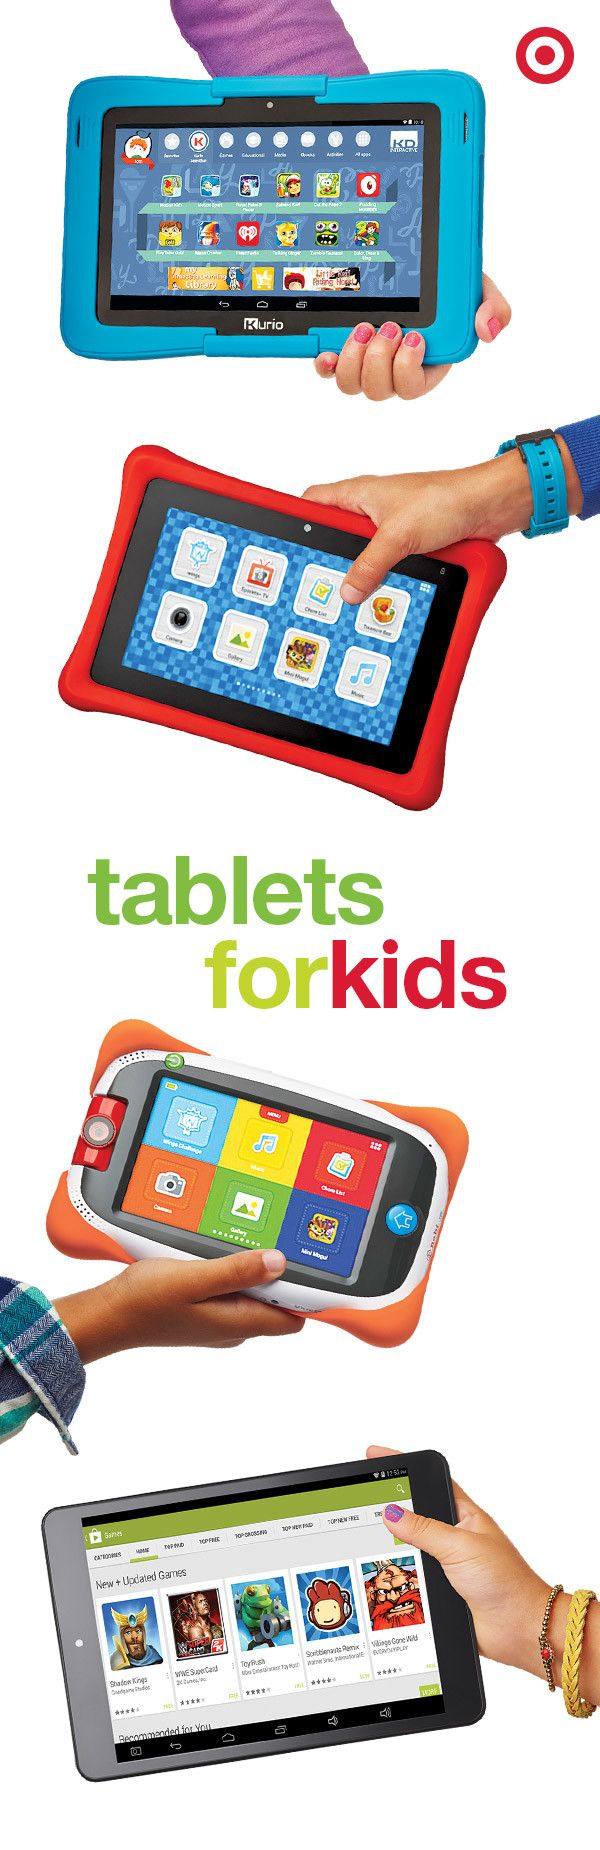 Best gift ever, or smartest gift ever? From teaching to gaming to watching movies, kids will love to swipe, press and interact with these Kurio, Nabi and RCA 8 Android tablets. What a sneaky, fun way to get them to learn.